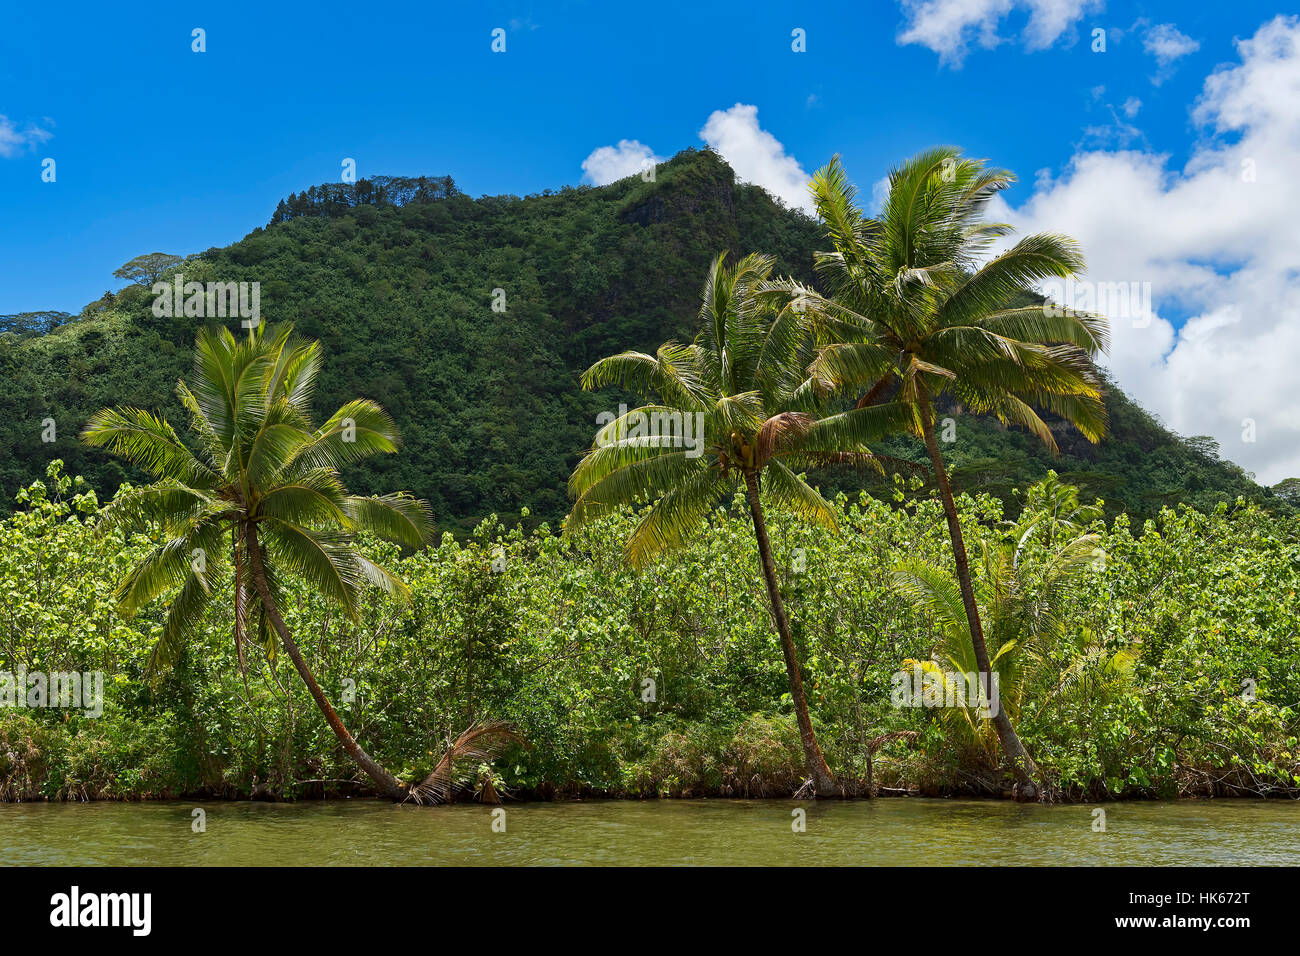 Coconut palms on lush coast, Raiatea, French Polynesia - Stock Image